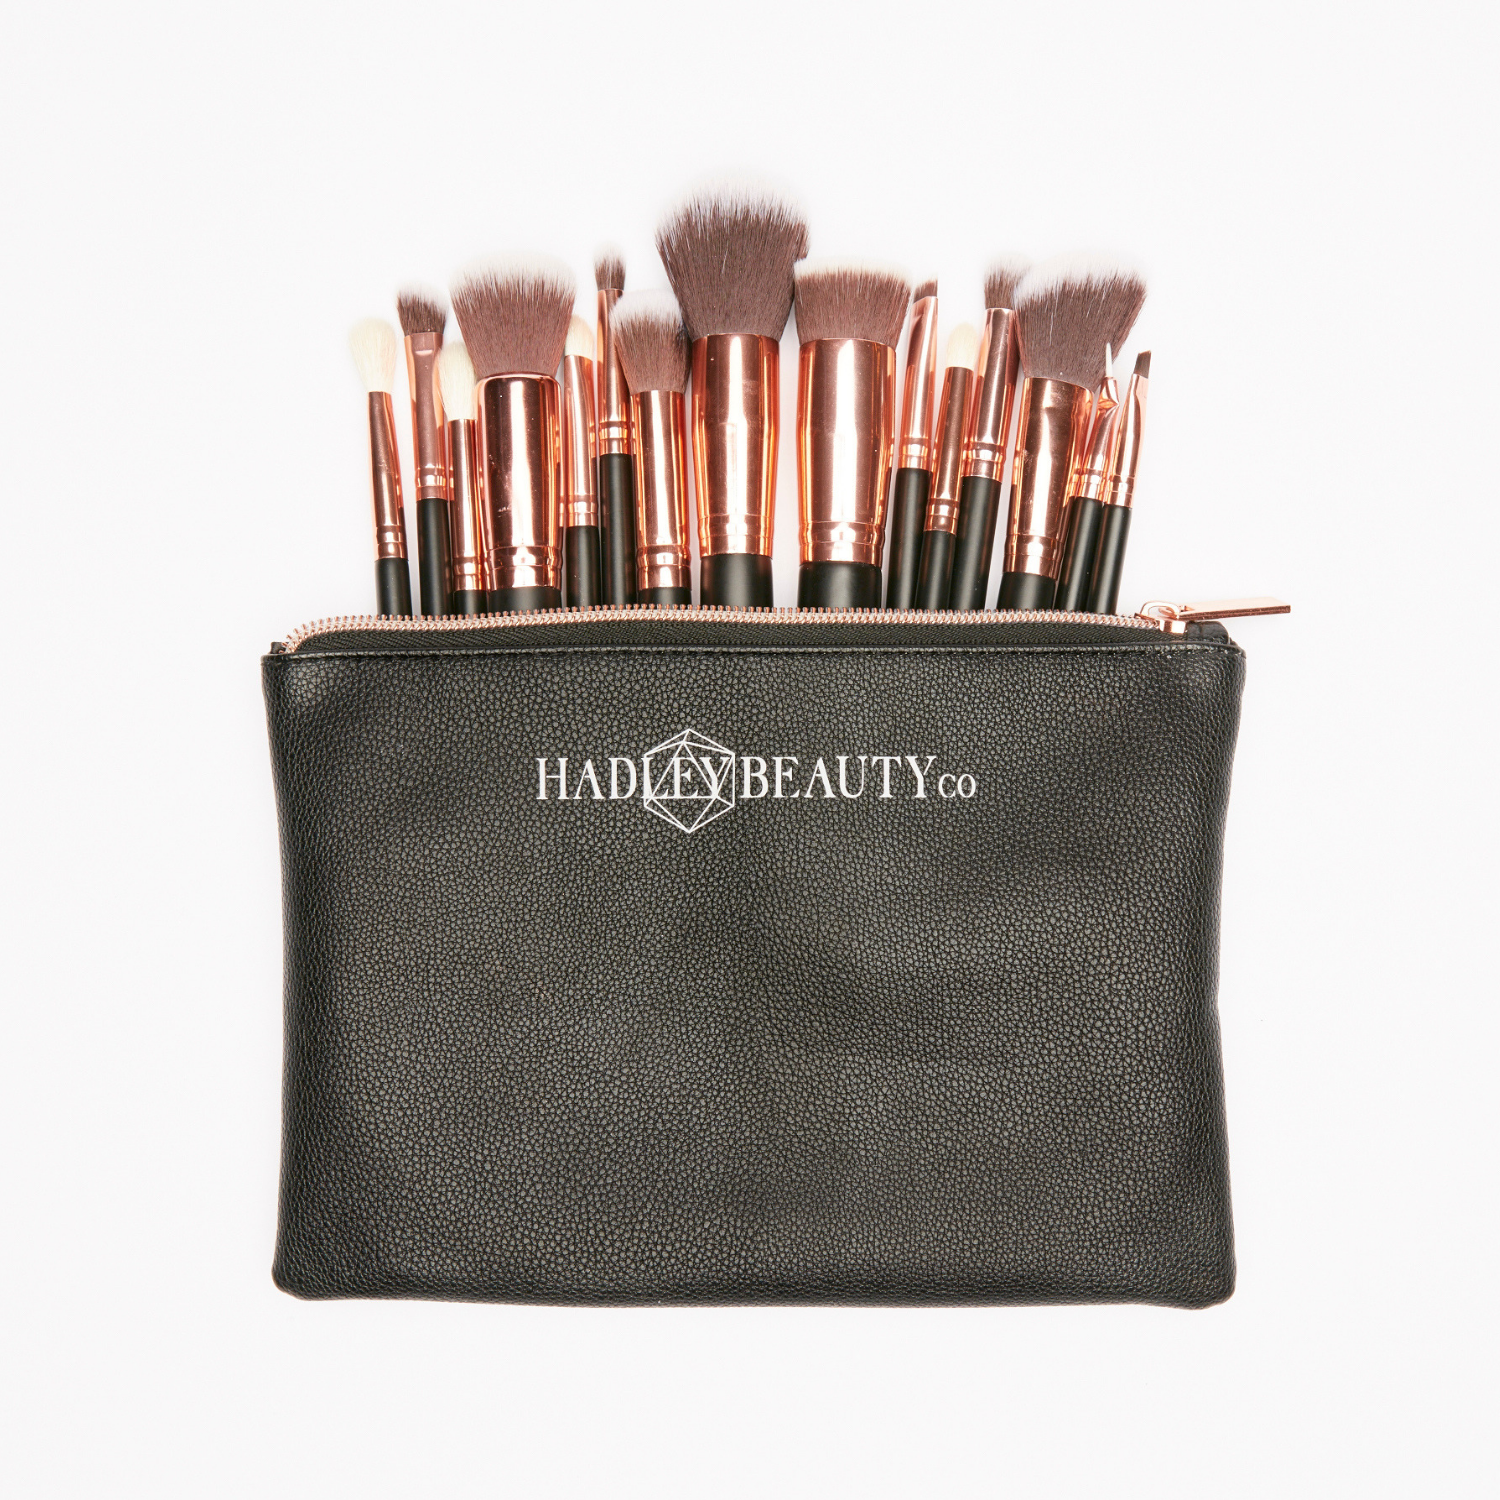 Hadley Beauty Co. - Hadley Beauty Co is the makeup brush brainchild from our GLAM Founder/Owner Meghan Hamilton. Named after her daughter, Hadley Beauty Company (or HBC) is a complete set of 15 makeup brushes - everything you would ever need to complete the perfect GLAM look! 11 of 15 are synthetic/vegan, and the remaining 4 are cruetly free natural brush hair. The goal is to make sure you each brush is multi functional, and perfect for the GLAMbeauty on the go!